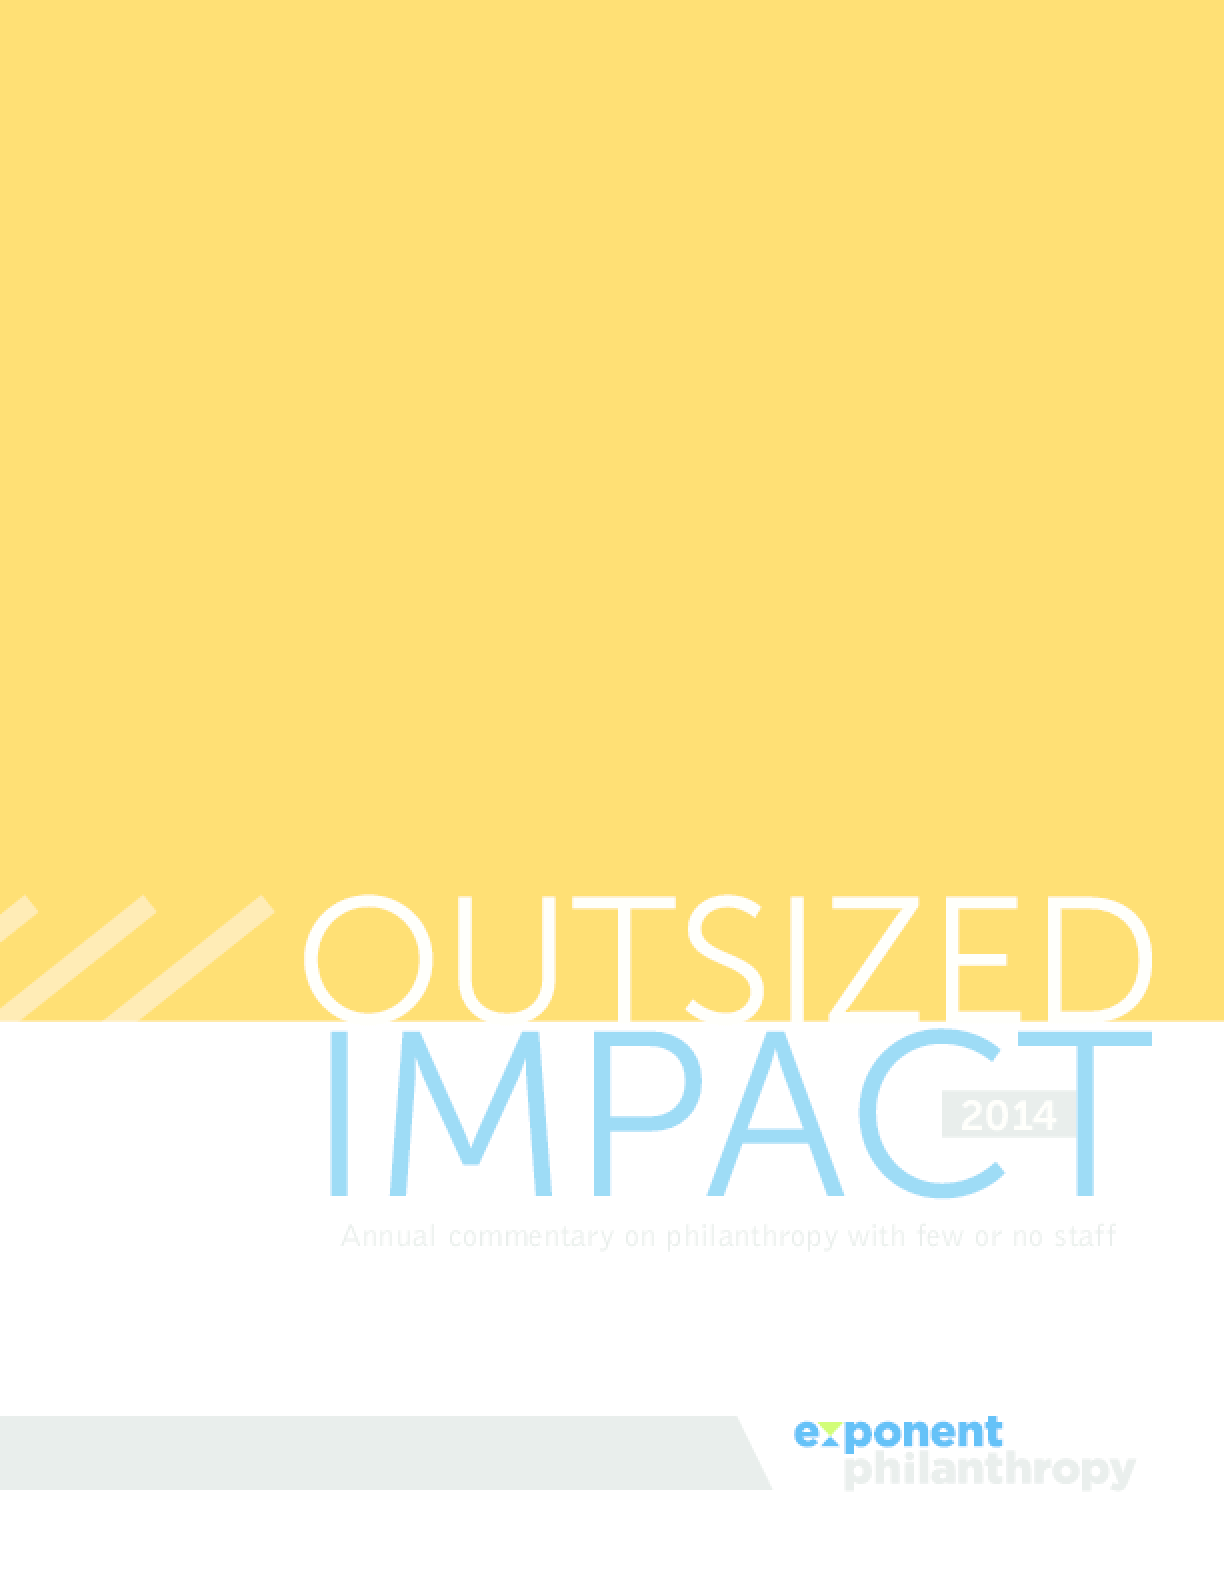 Stories of Outsized Impact featuring Alex Velaj